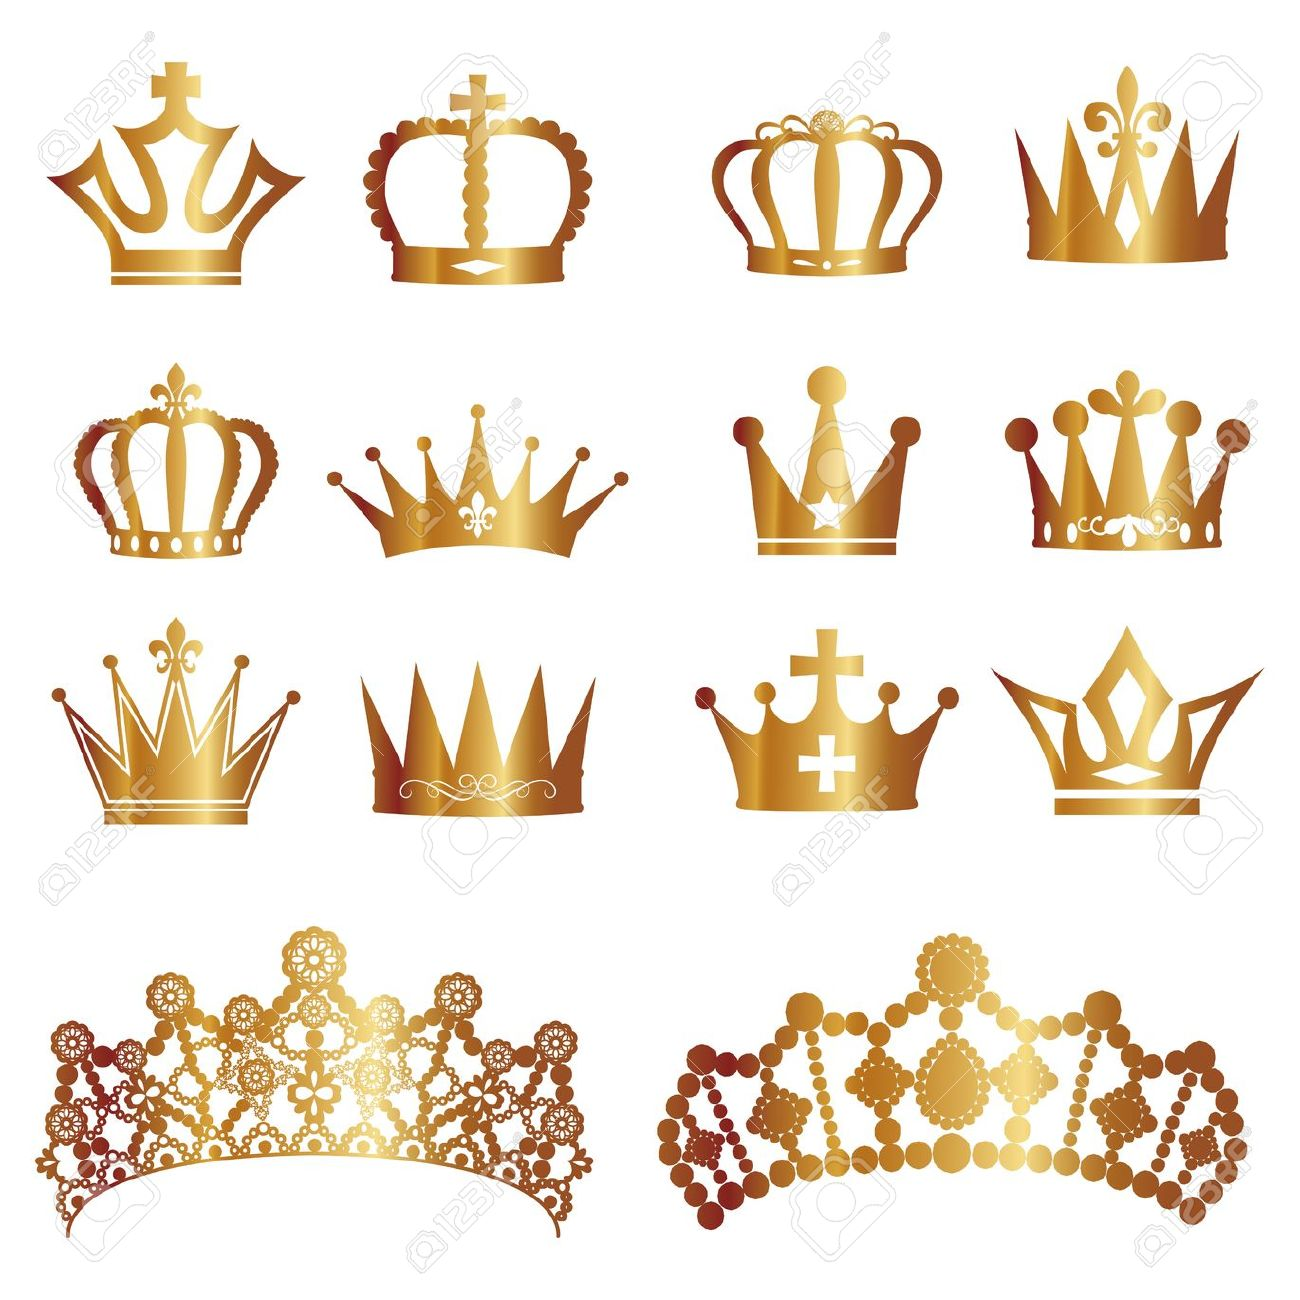 Crown clipart classy. Gold pencil and in